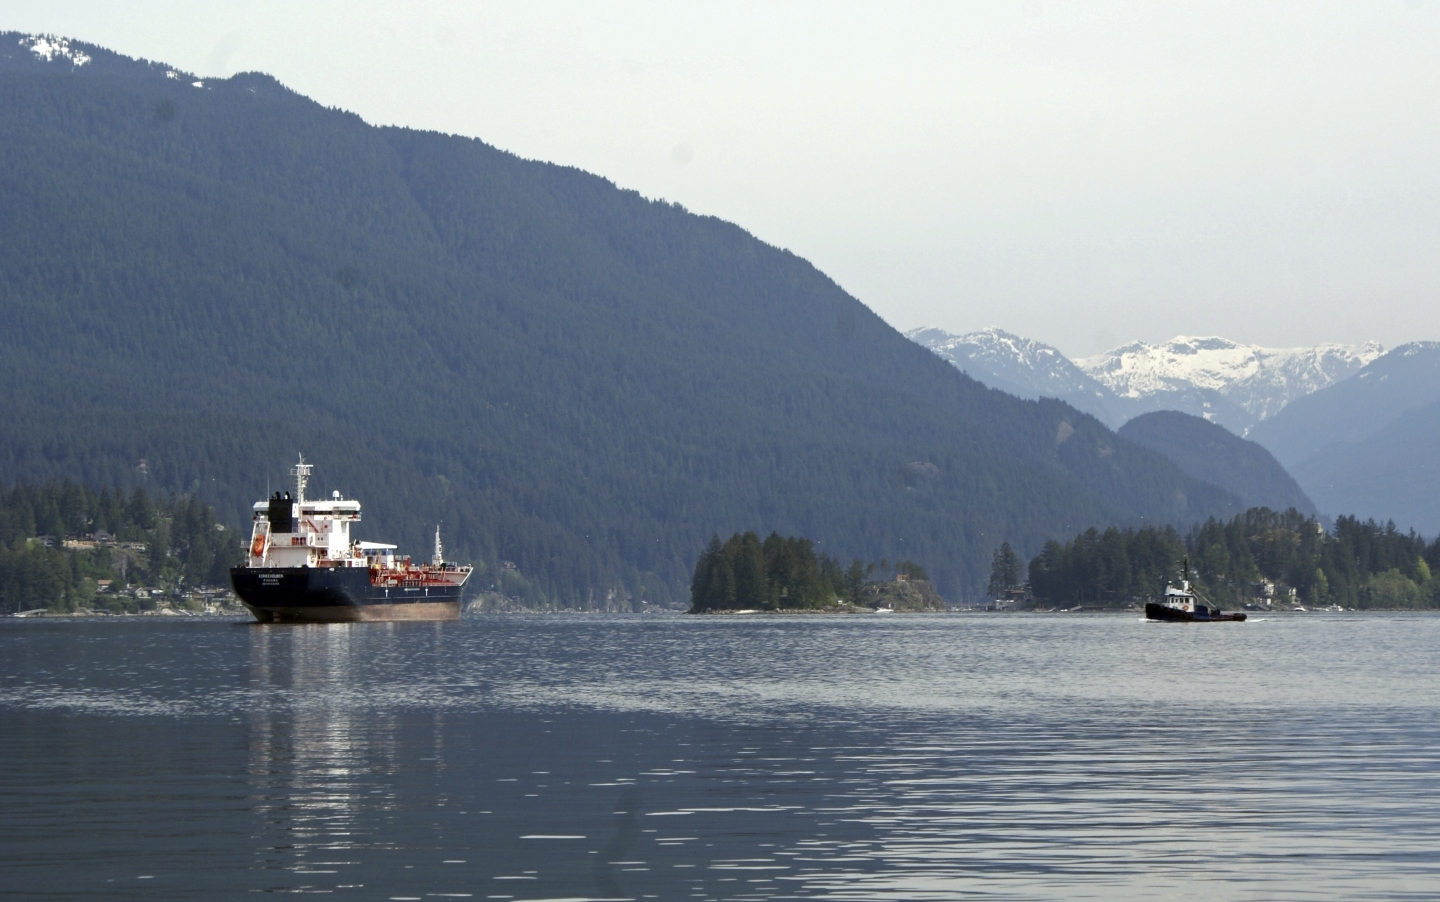 An oil tanker outside the Kinder Morgan Inc. Westridge oil terminal in Vancouver, at the end of the Trans Mountain pipeline that begins in northern Alberta. (AP Photo/Jeremy Hainsworth)